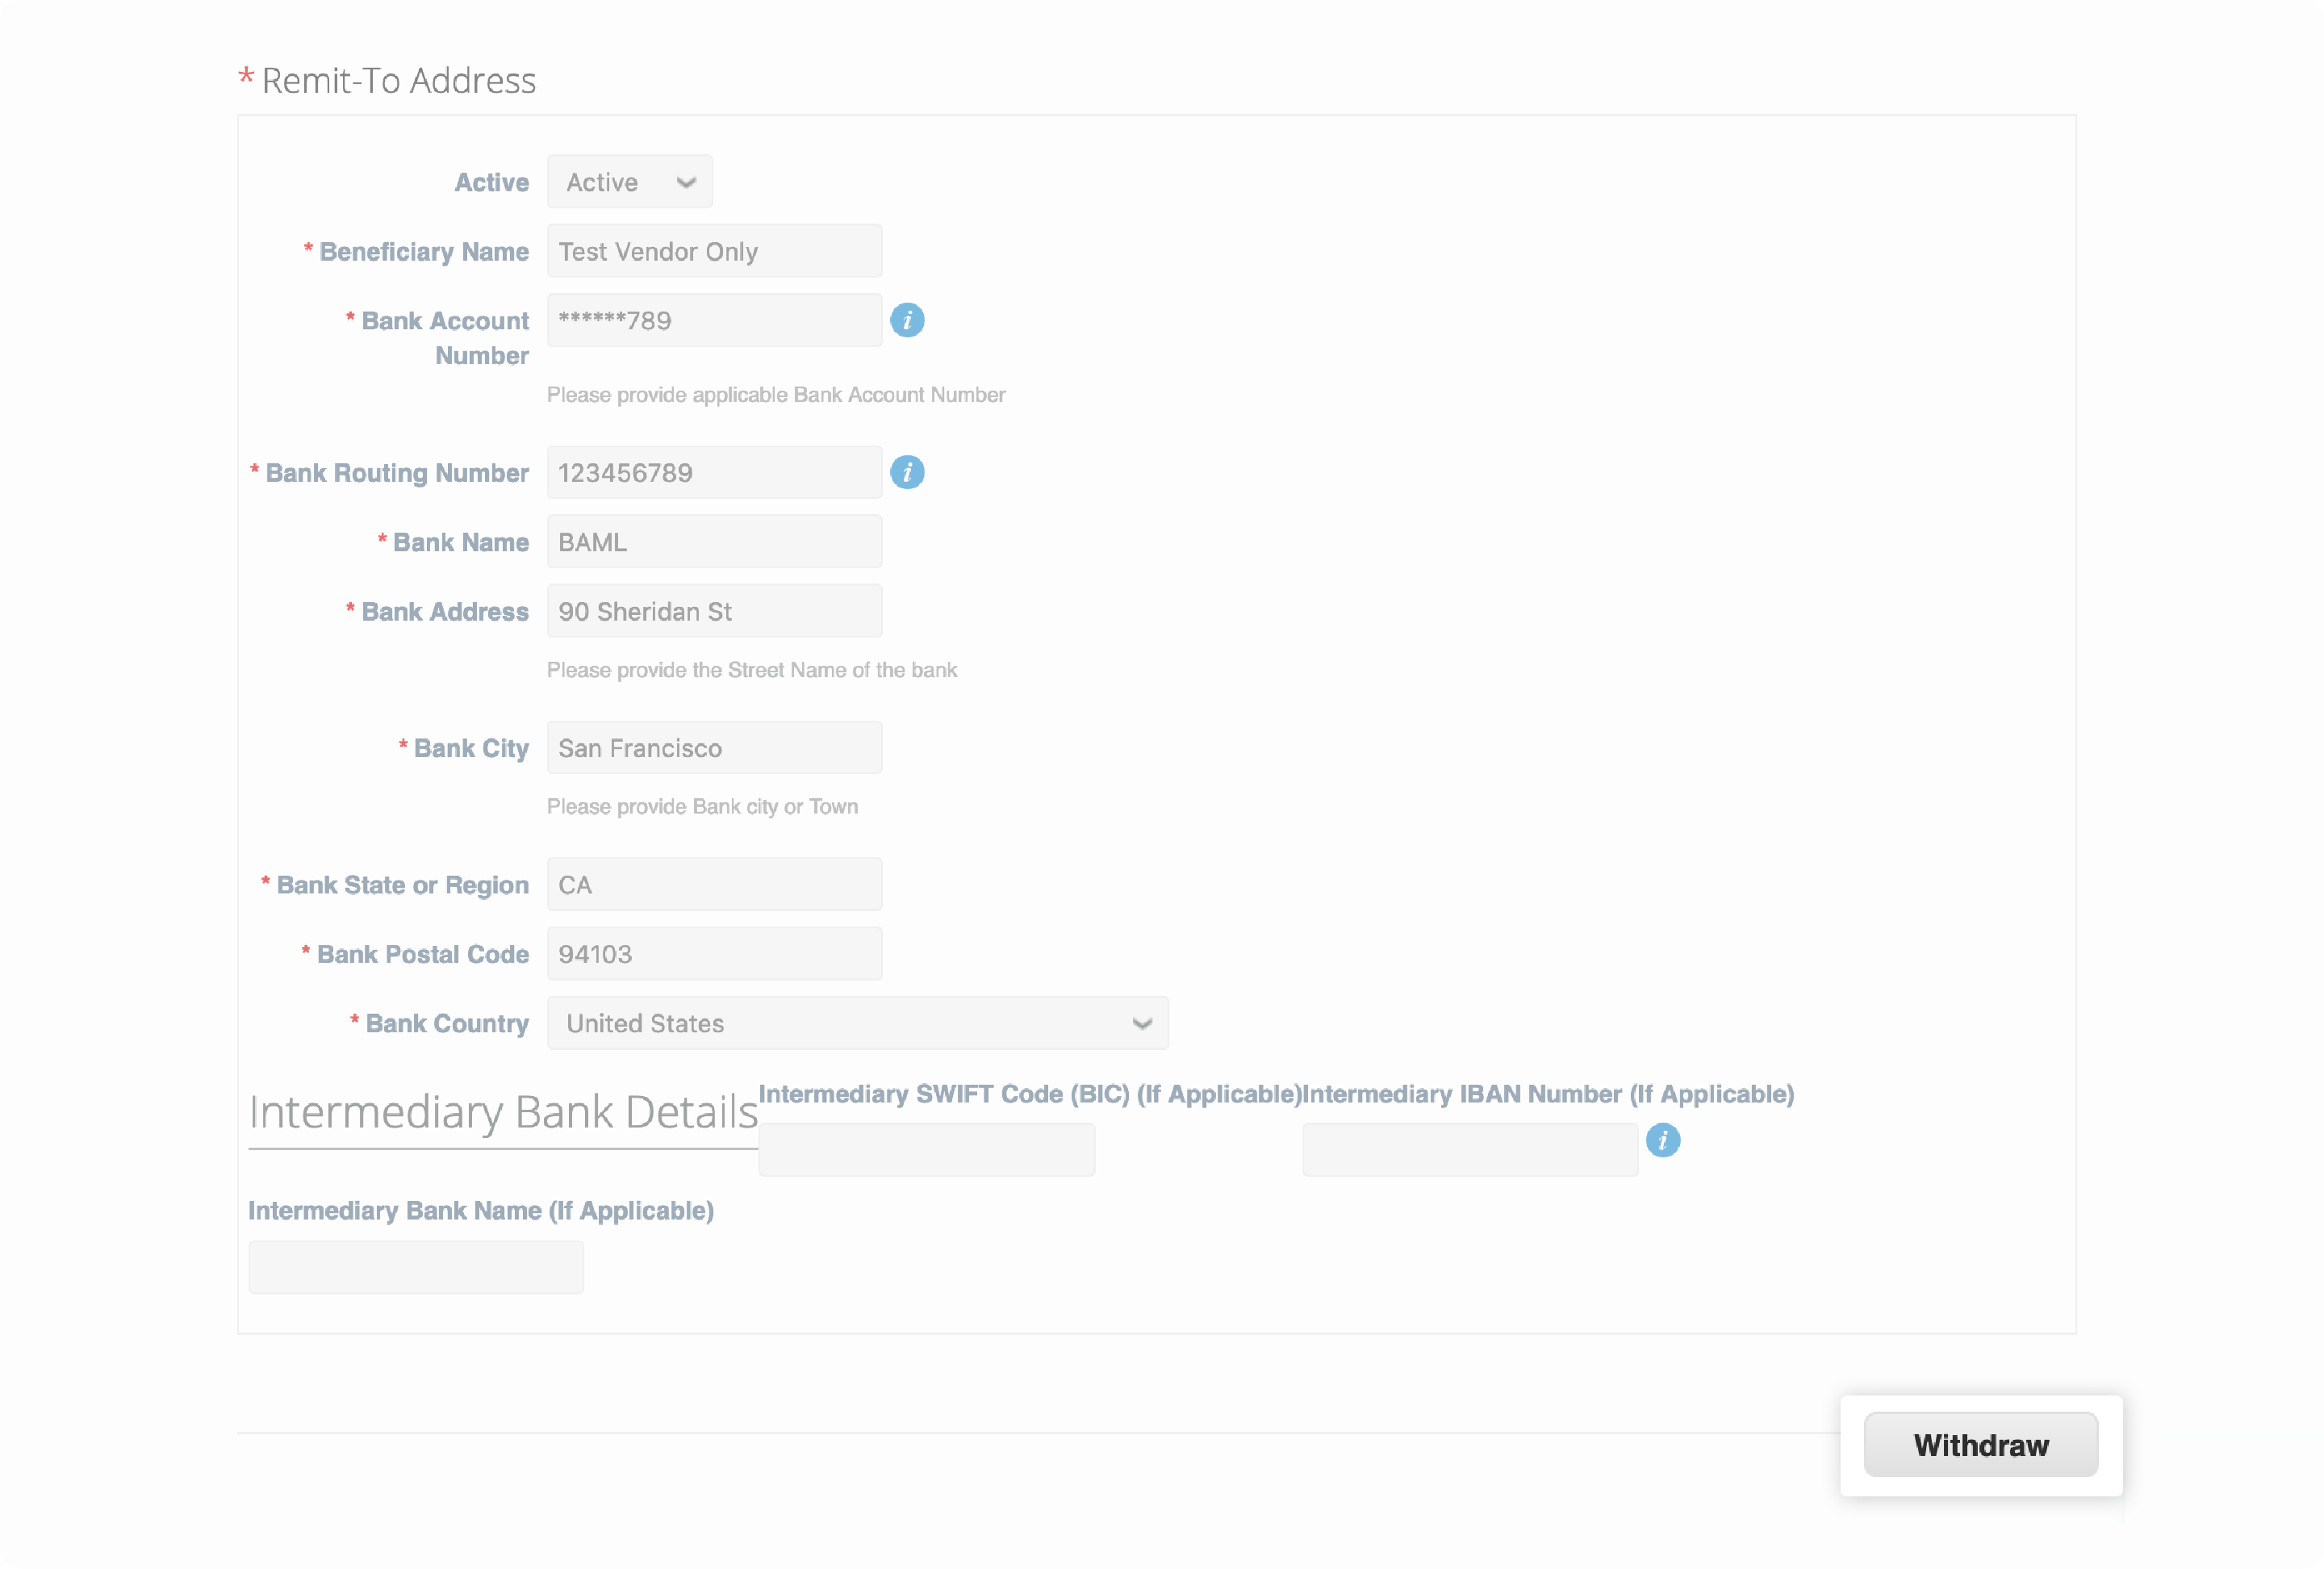 Coupa Supplier Portal Remit-To Address form Withdraw button